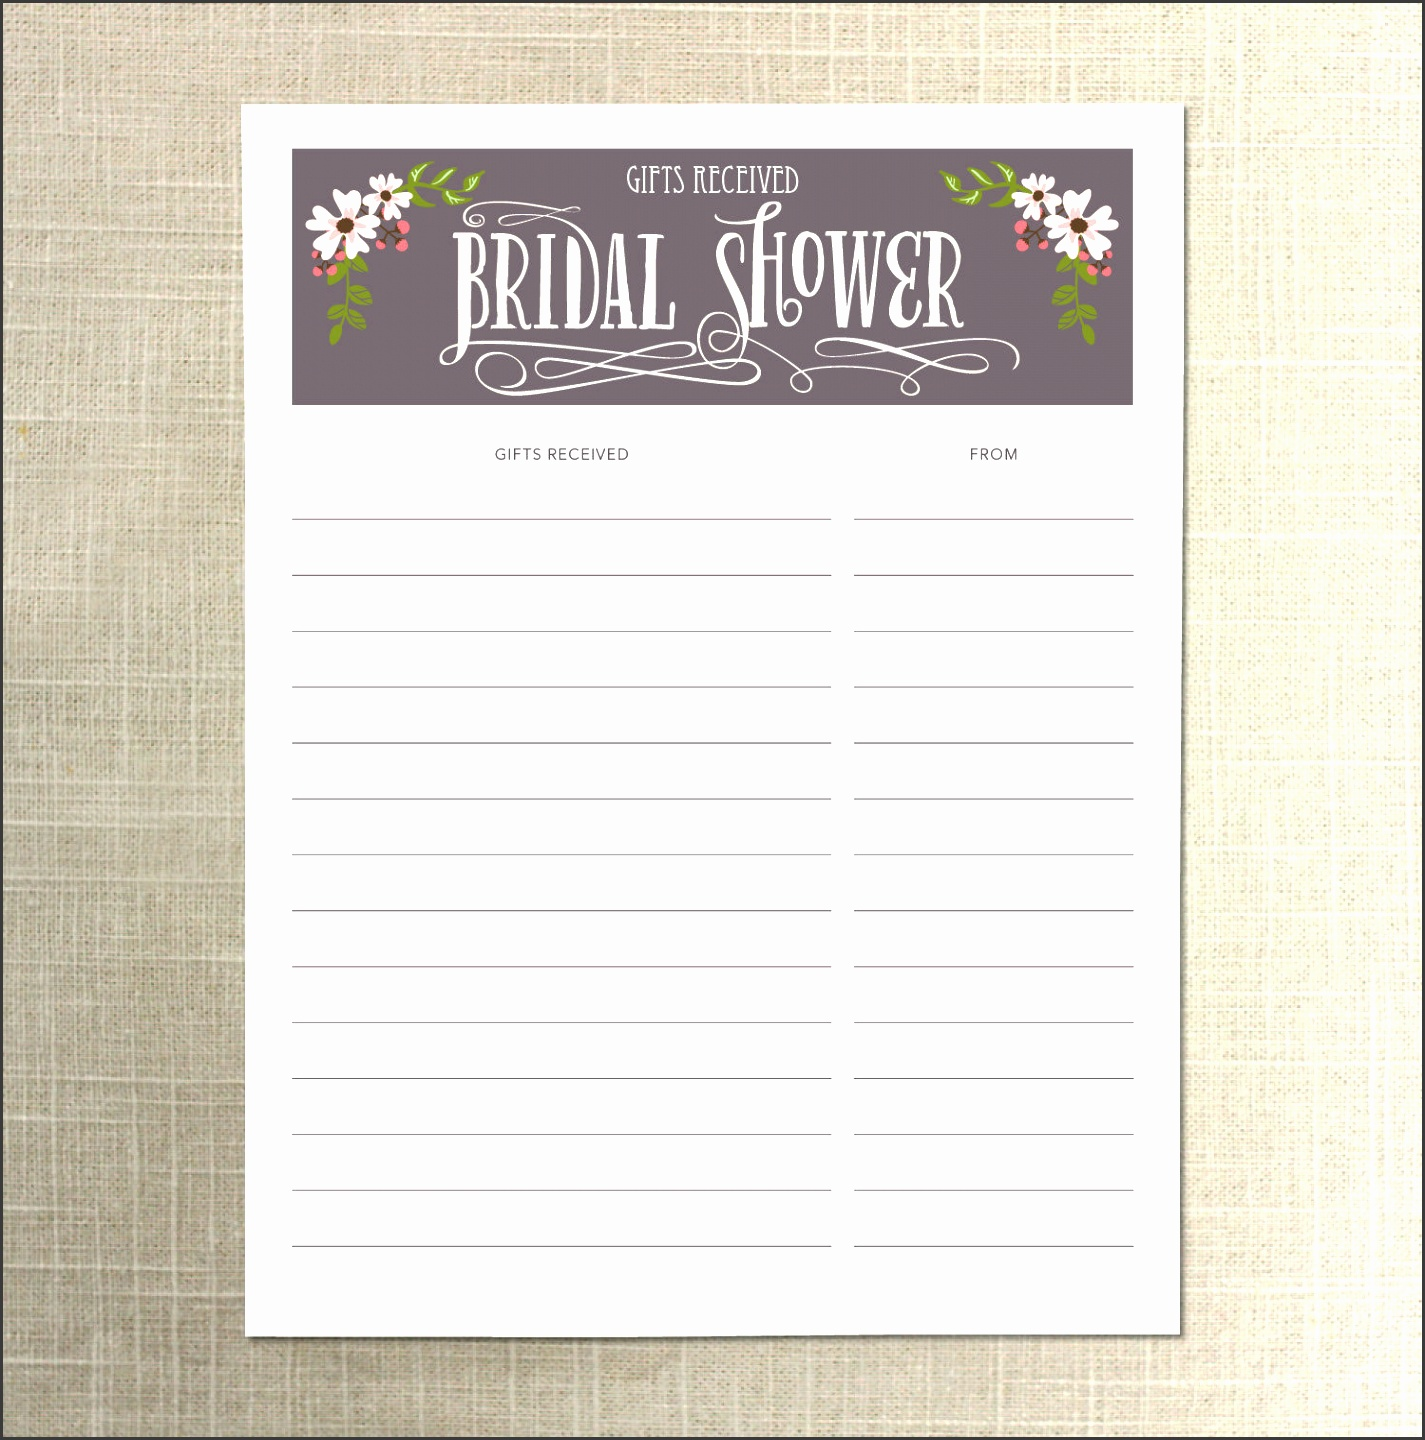 bridal shower to do list template il fullxfull bridal shower to do list template printable wedding guest list template printable wedding guest list template